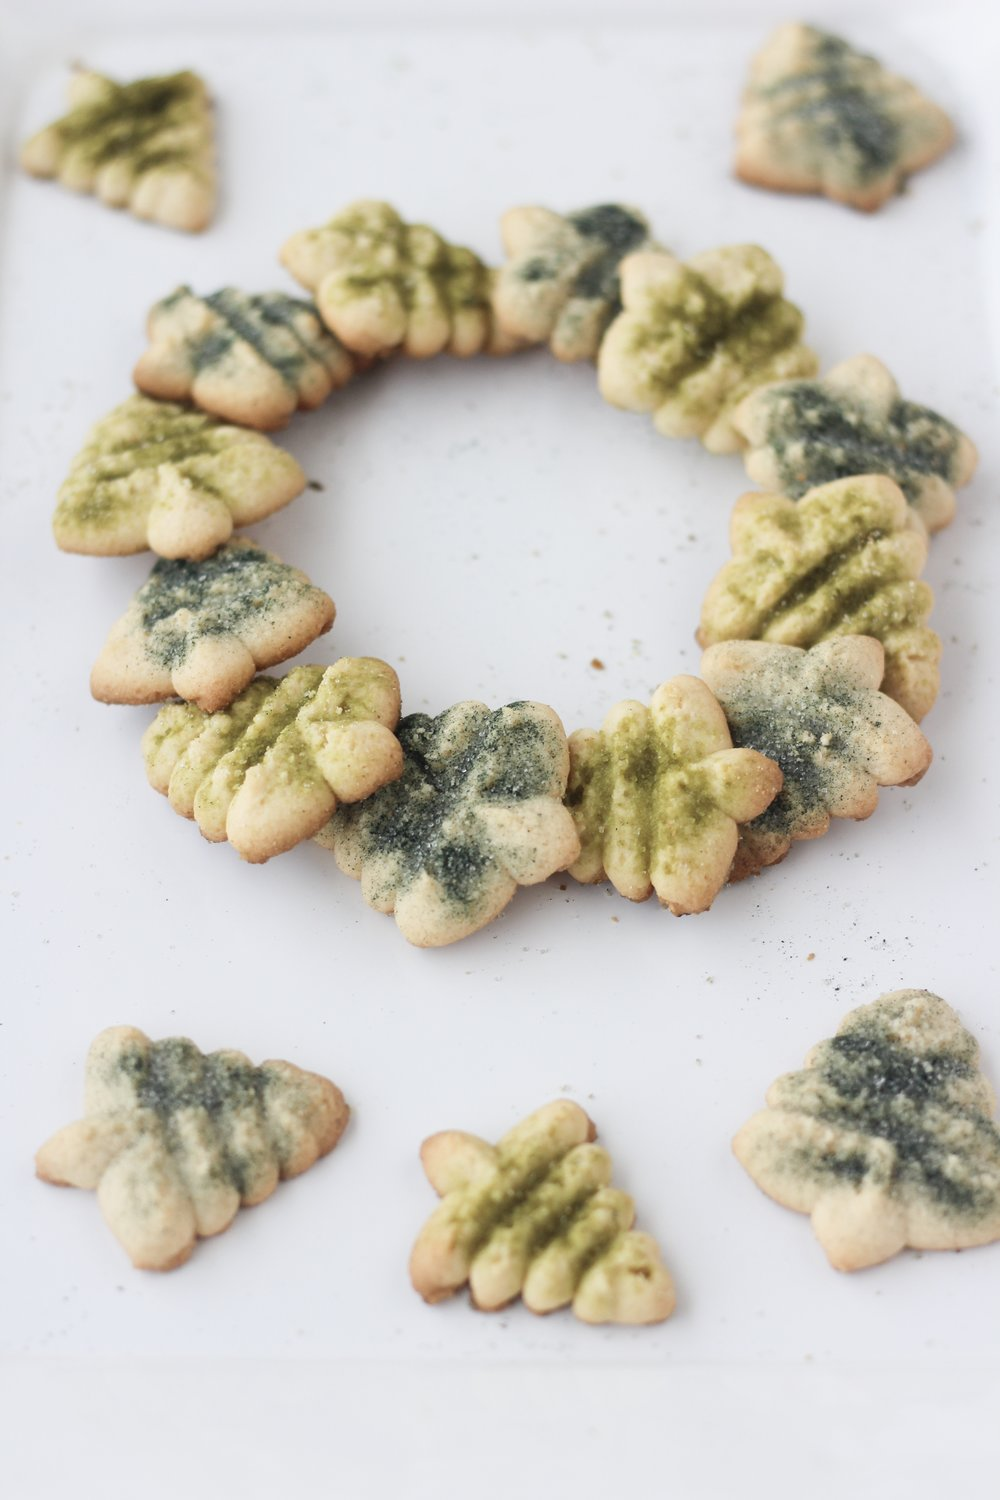 Gluten-free Christmas cookies perfect for and holiday party. The recipe is super simple too!